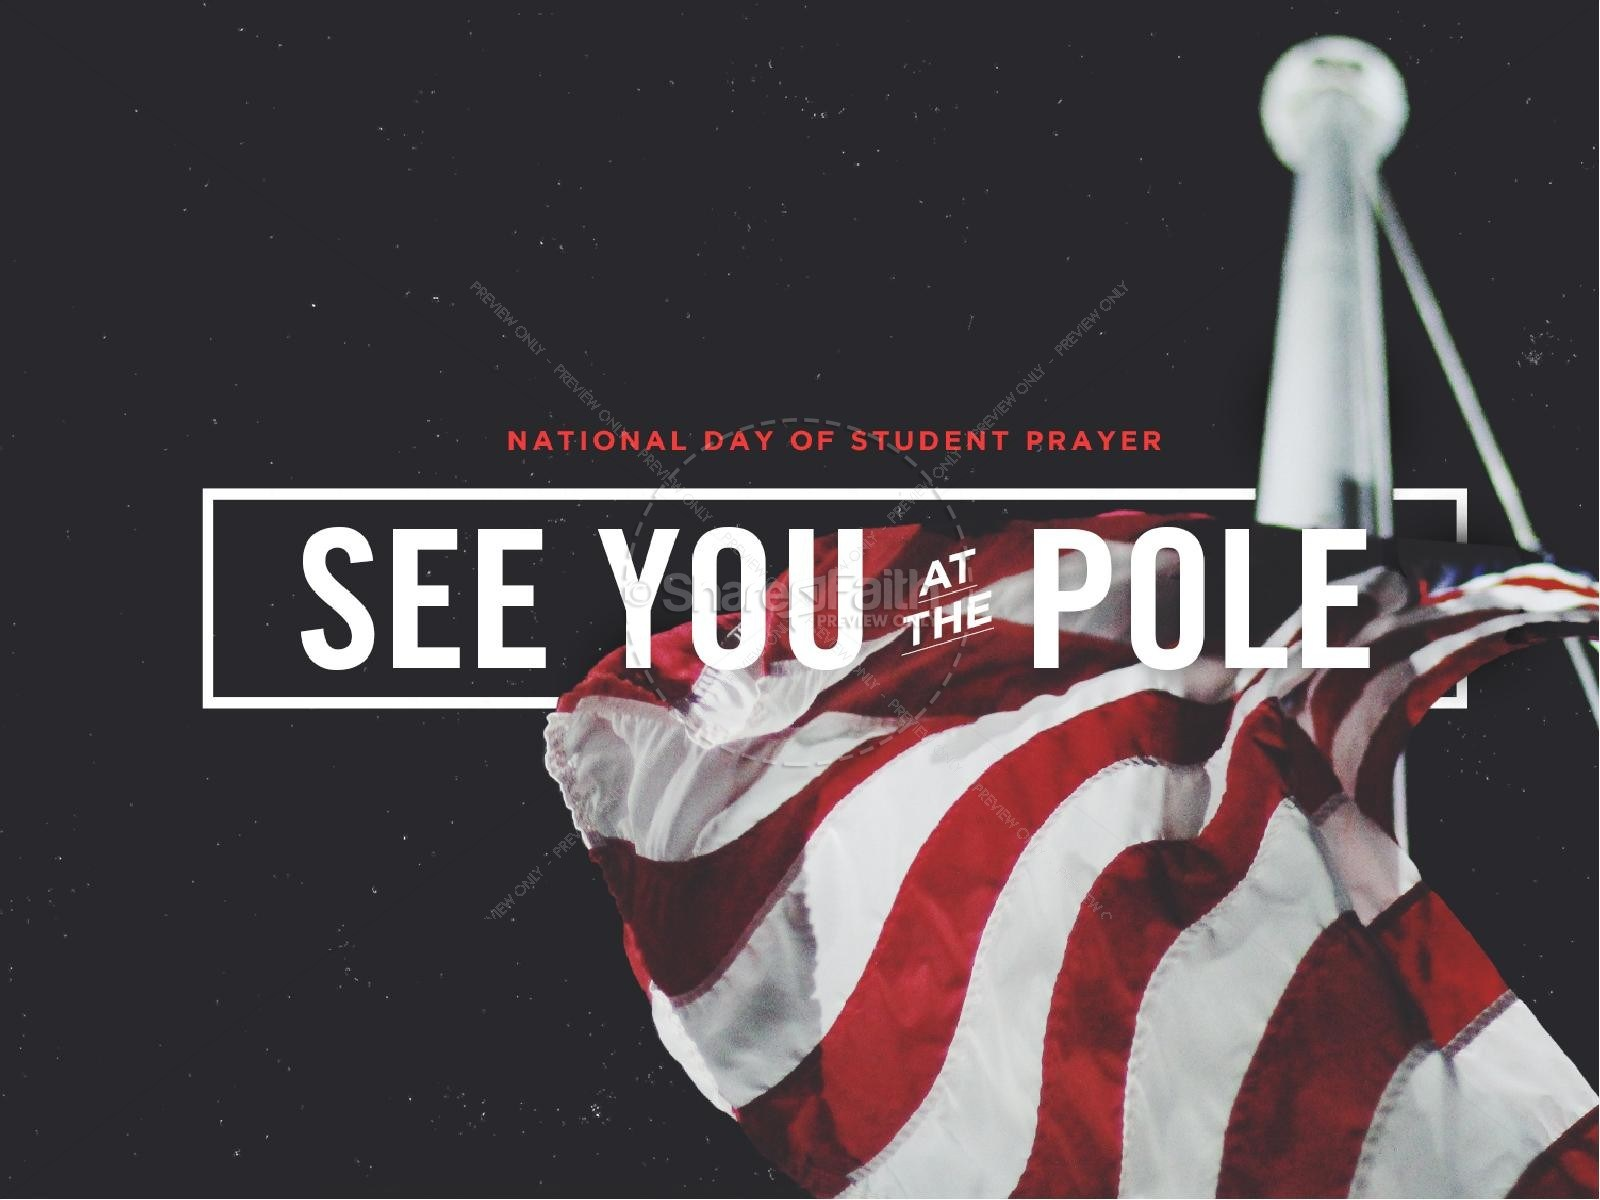 See you at the pole clipart 4 » Clipart Portal.